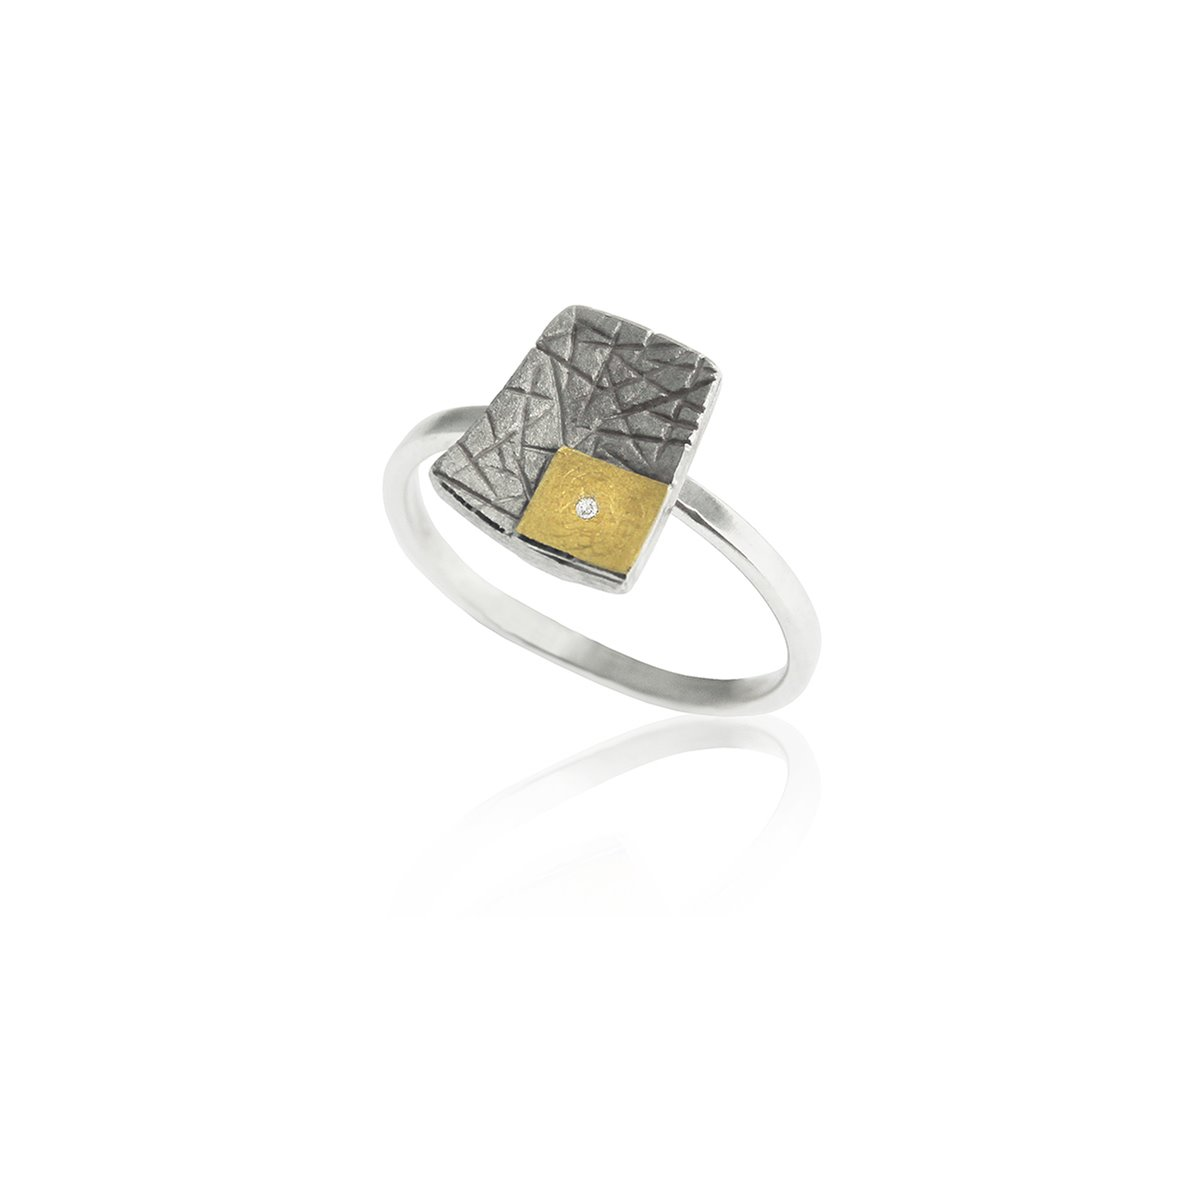 ANELL PLATA I OR AMB DIAMANT. R1804D